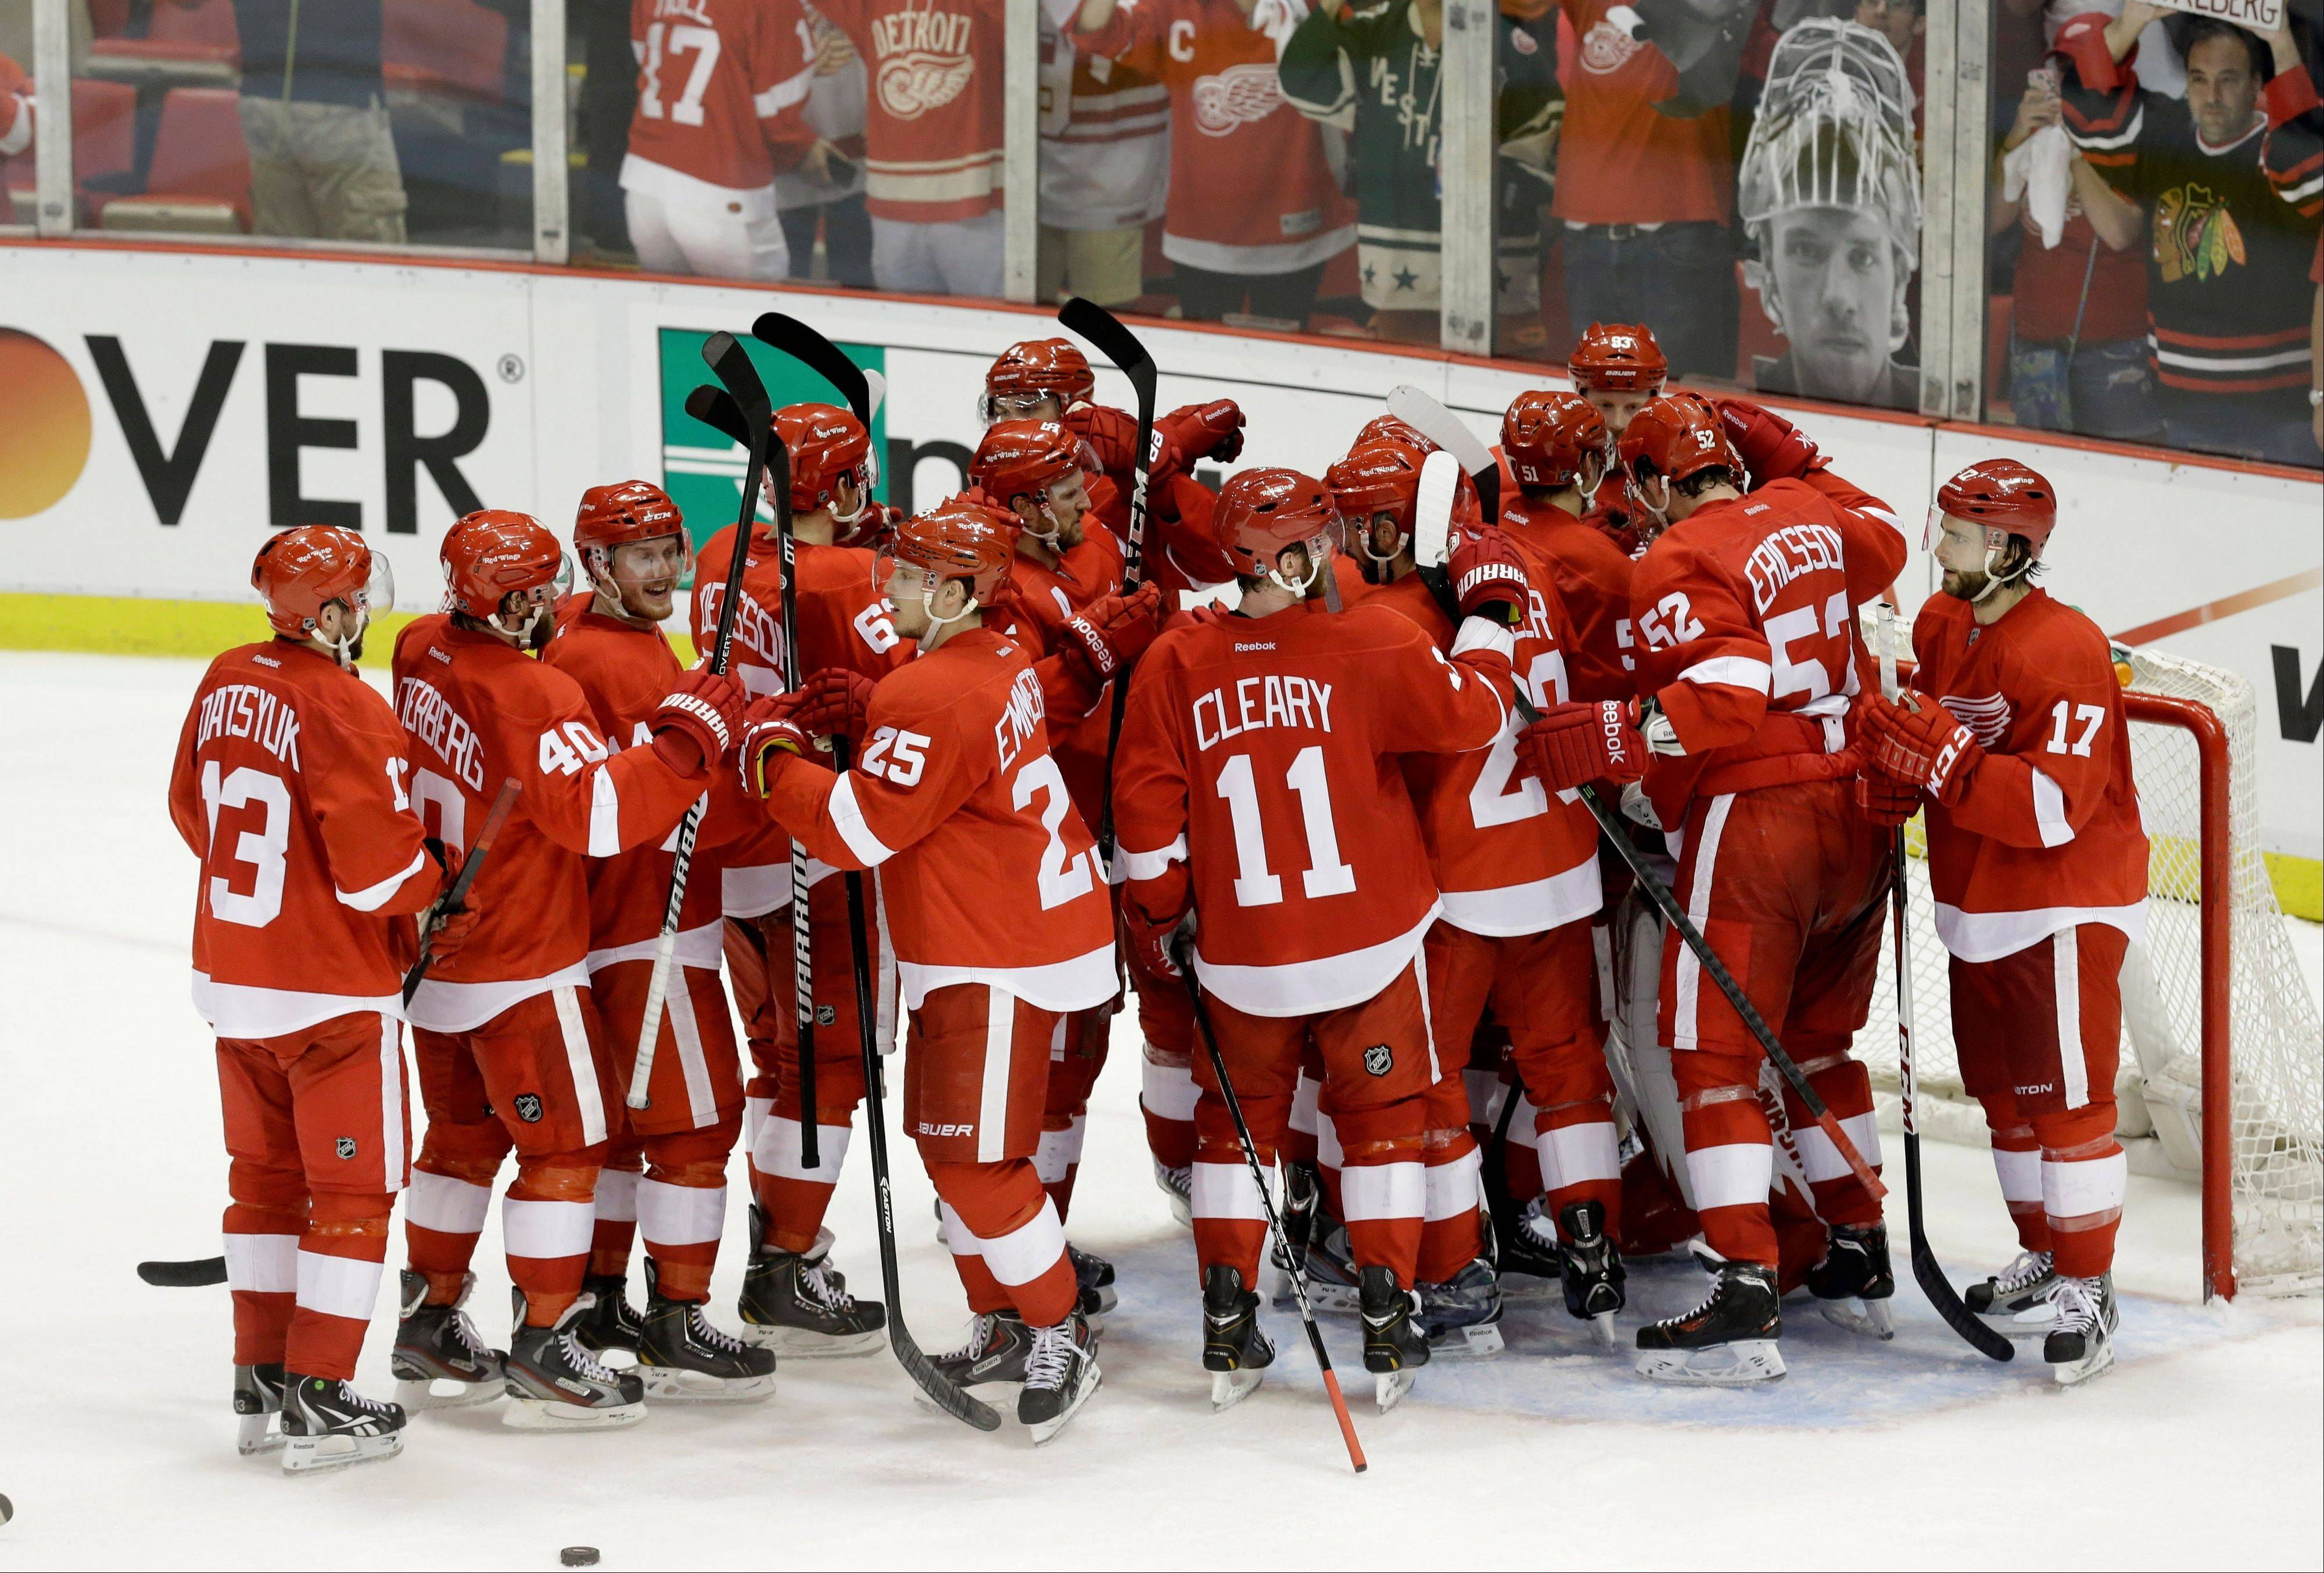 Who's to say the Detroit Red Wings, here celebrating their 3-1 victory in Game 3, haven't evolved into a team as good and deep and cohesive and gritty and overall dangerous as the Blackhawks?